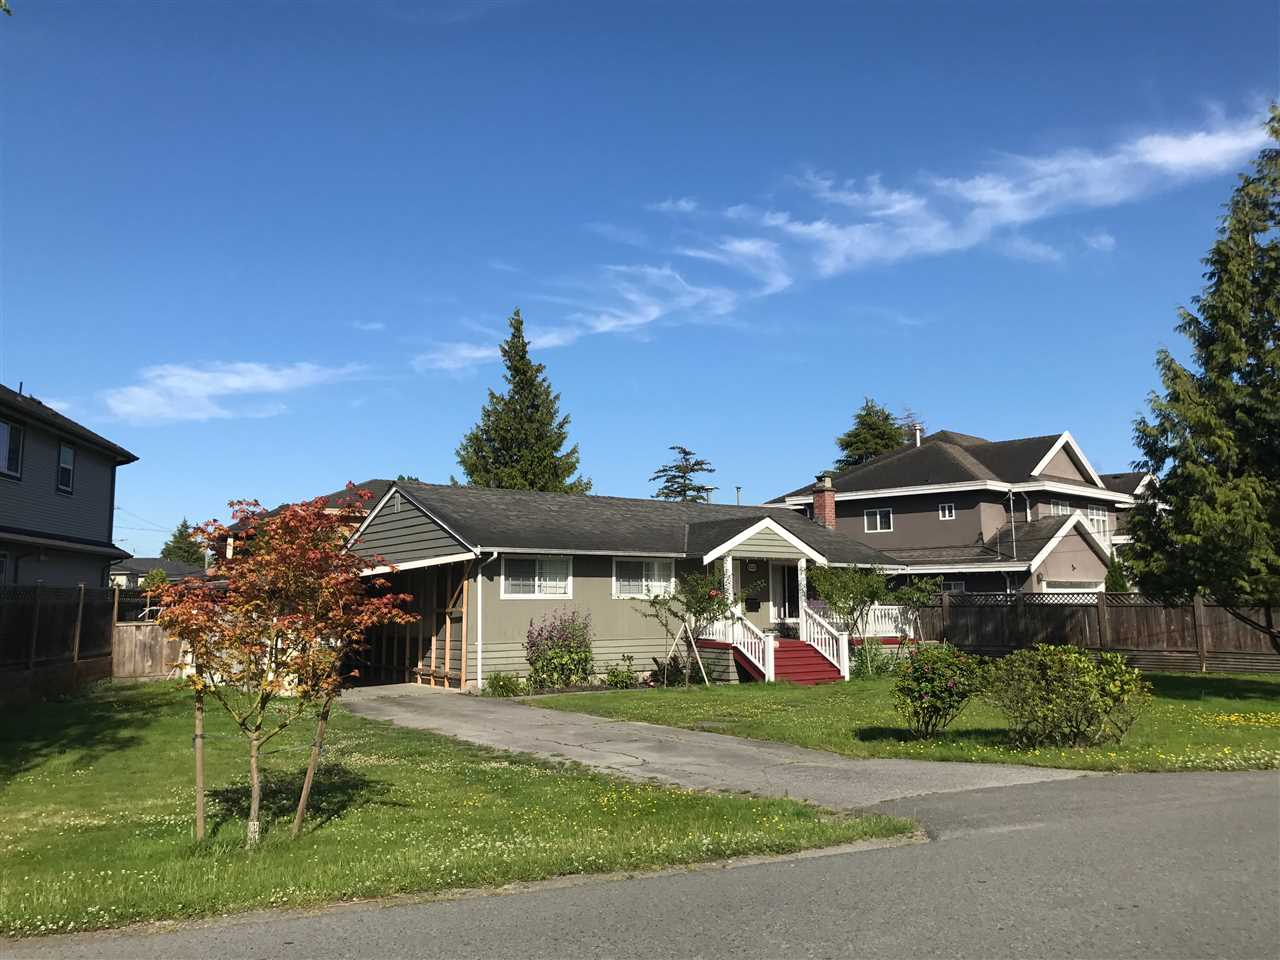 Huge lot with a very nice ranch in the popular McNair area. Owners have beautiful maintained this 1700 sq ft ranch style home with gorgeous addition! Owner keep the house in good condition & would work well for moving in. Realtor is related with owner.